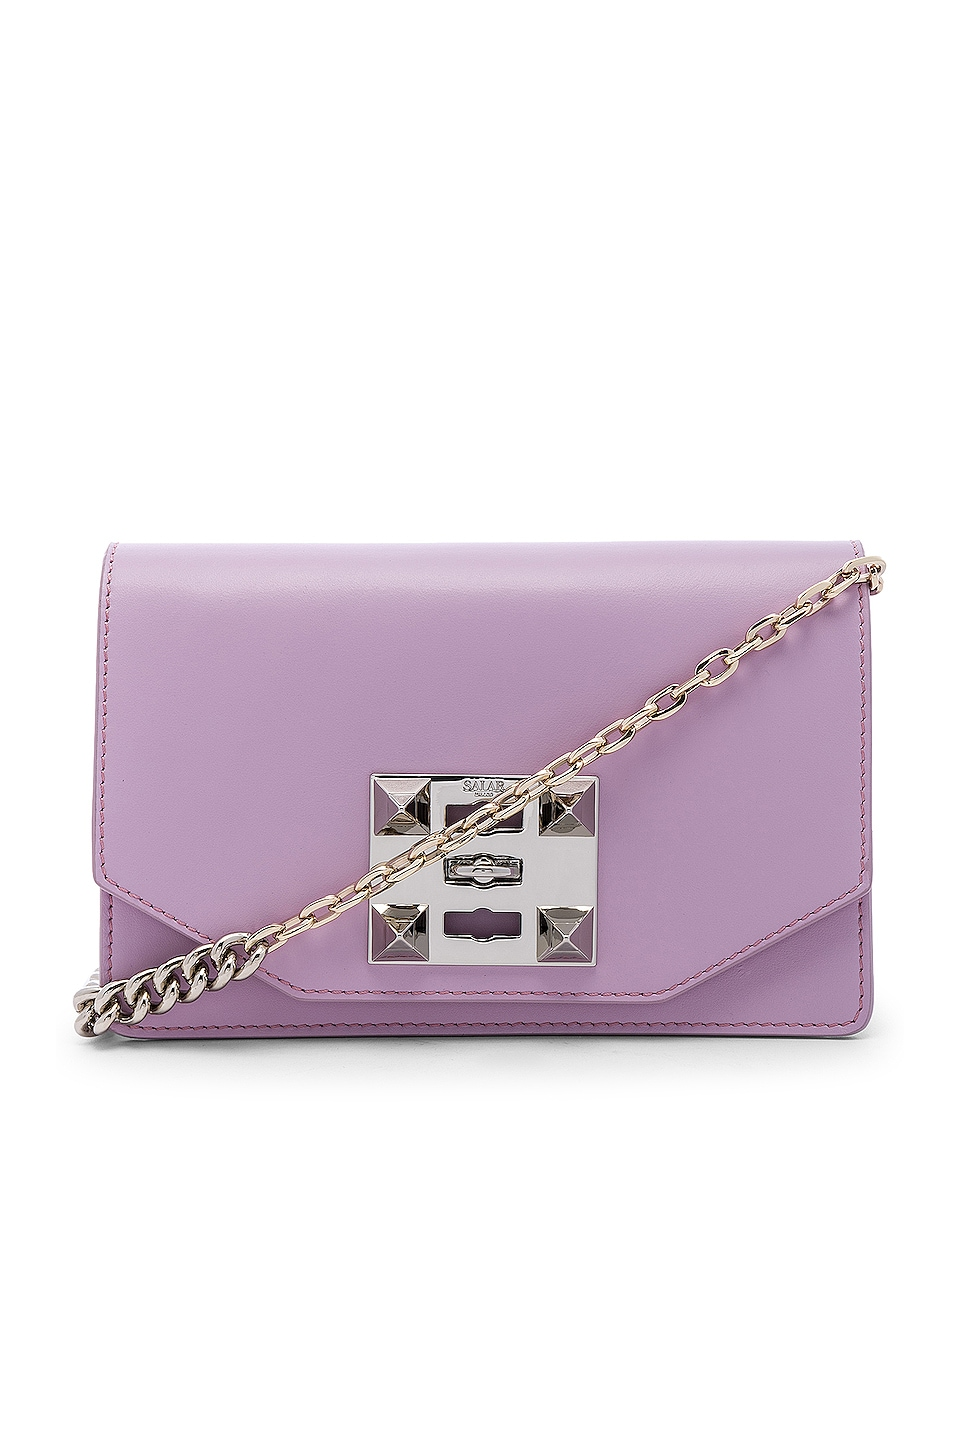 SALAR Kio Chain Bag in Lilac